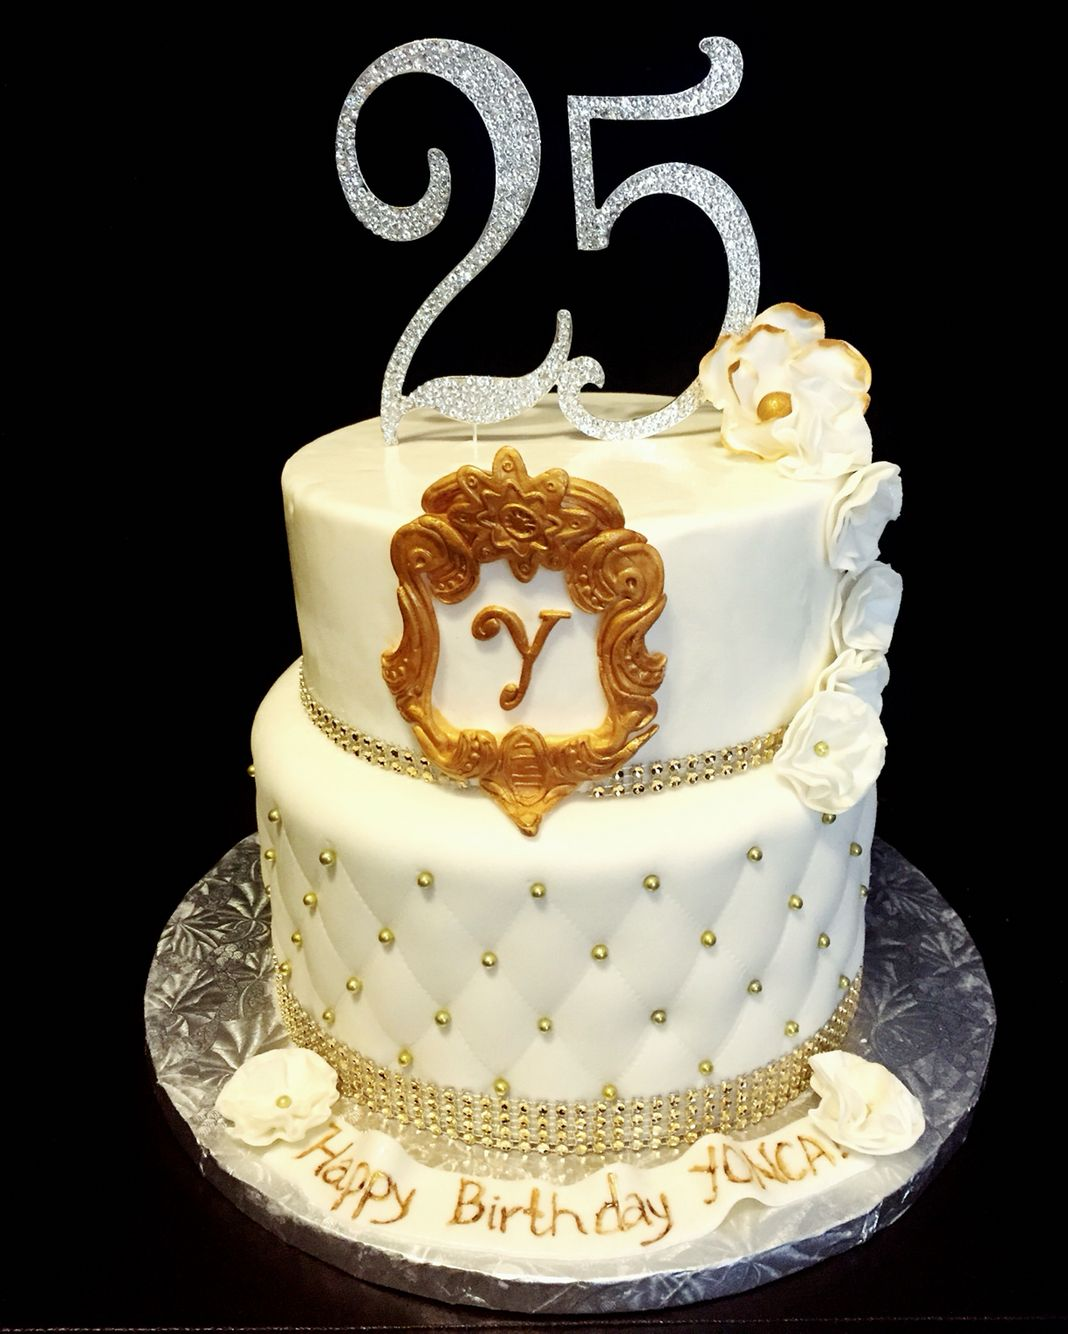 25th Birthday Cake Quilted Fondant With Gold Dragees On Top Is Handmade Frame Inside Decadent Red Velvet Cream Cheese Filling